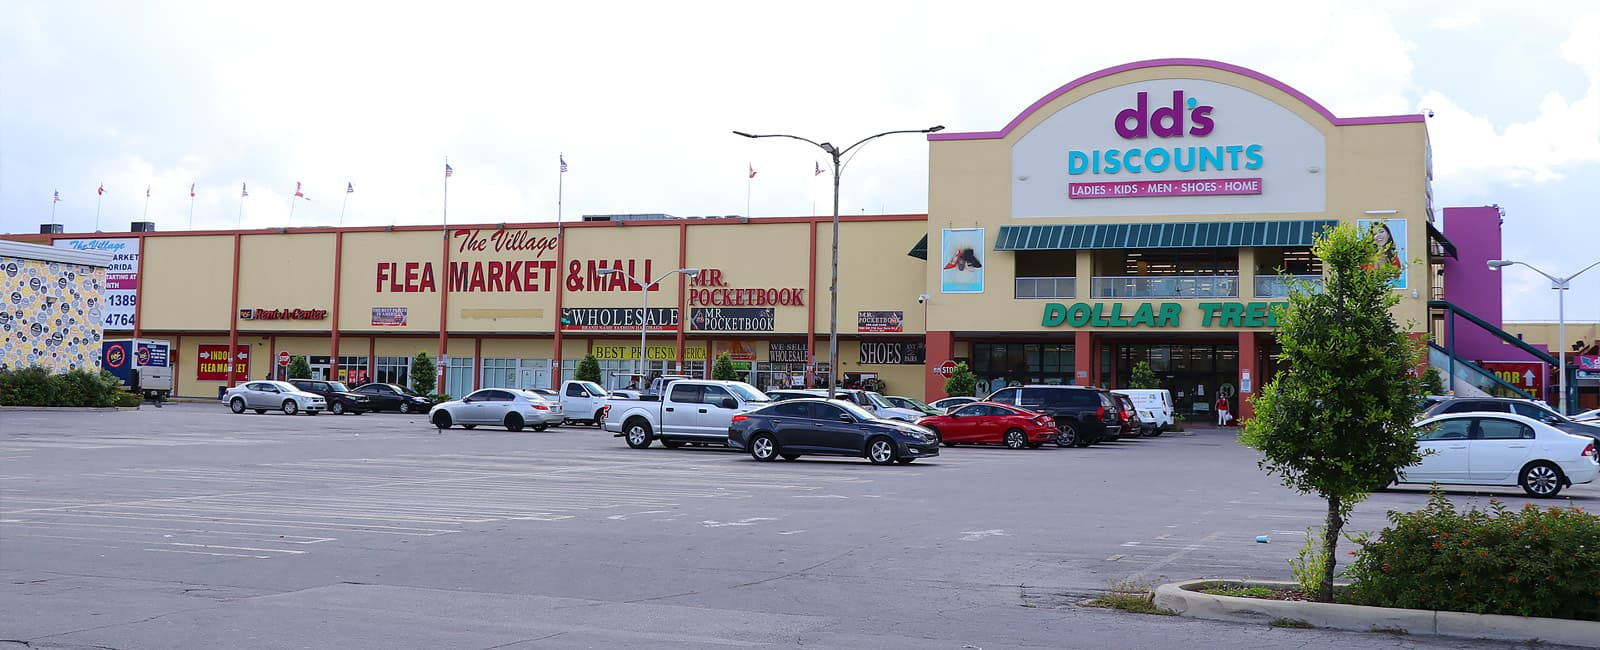 front-view-of-a-dds-store-and-flea-market